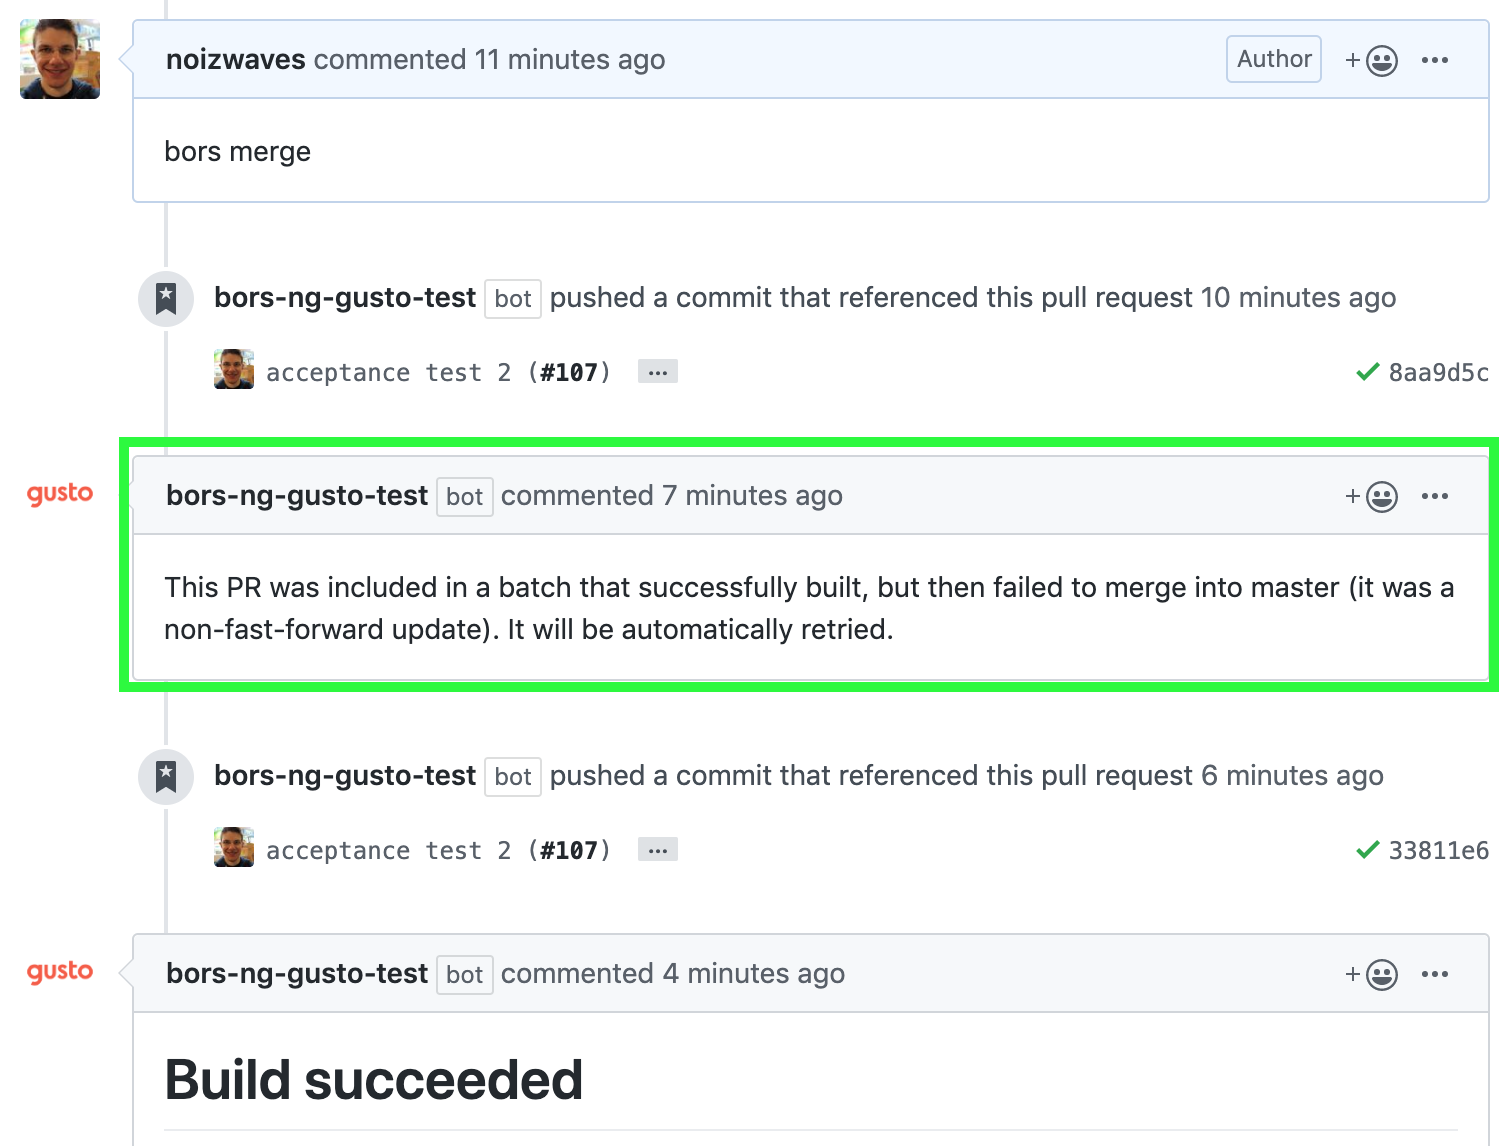 The comment history for an affected PR in the batch